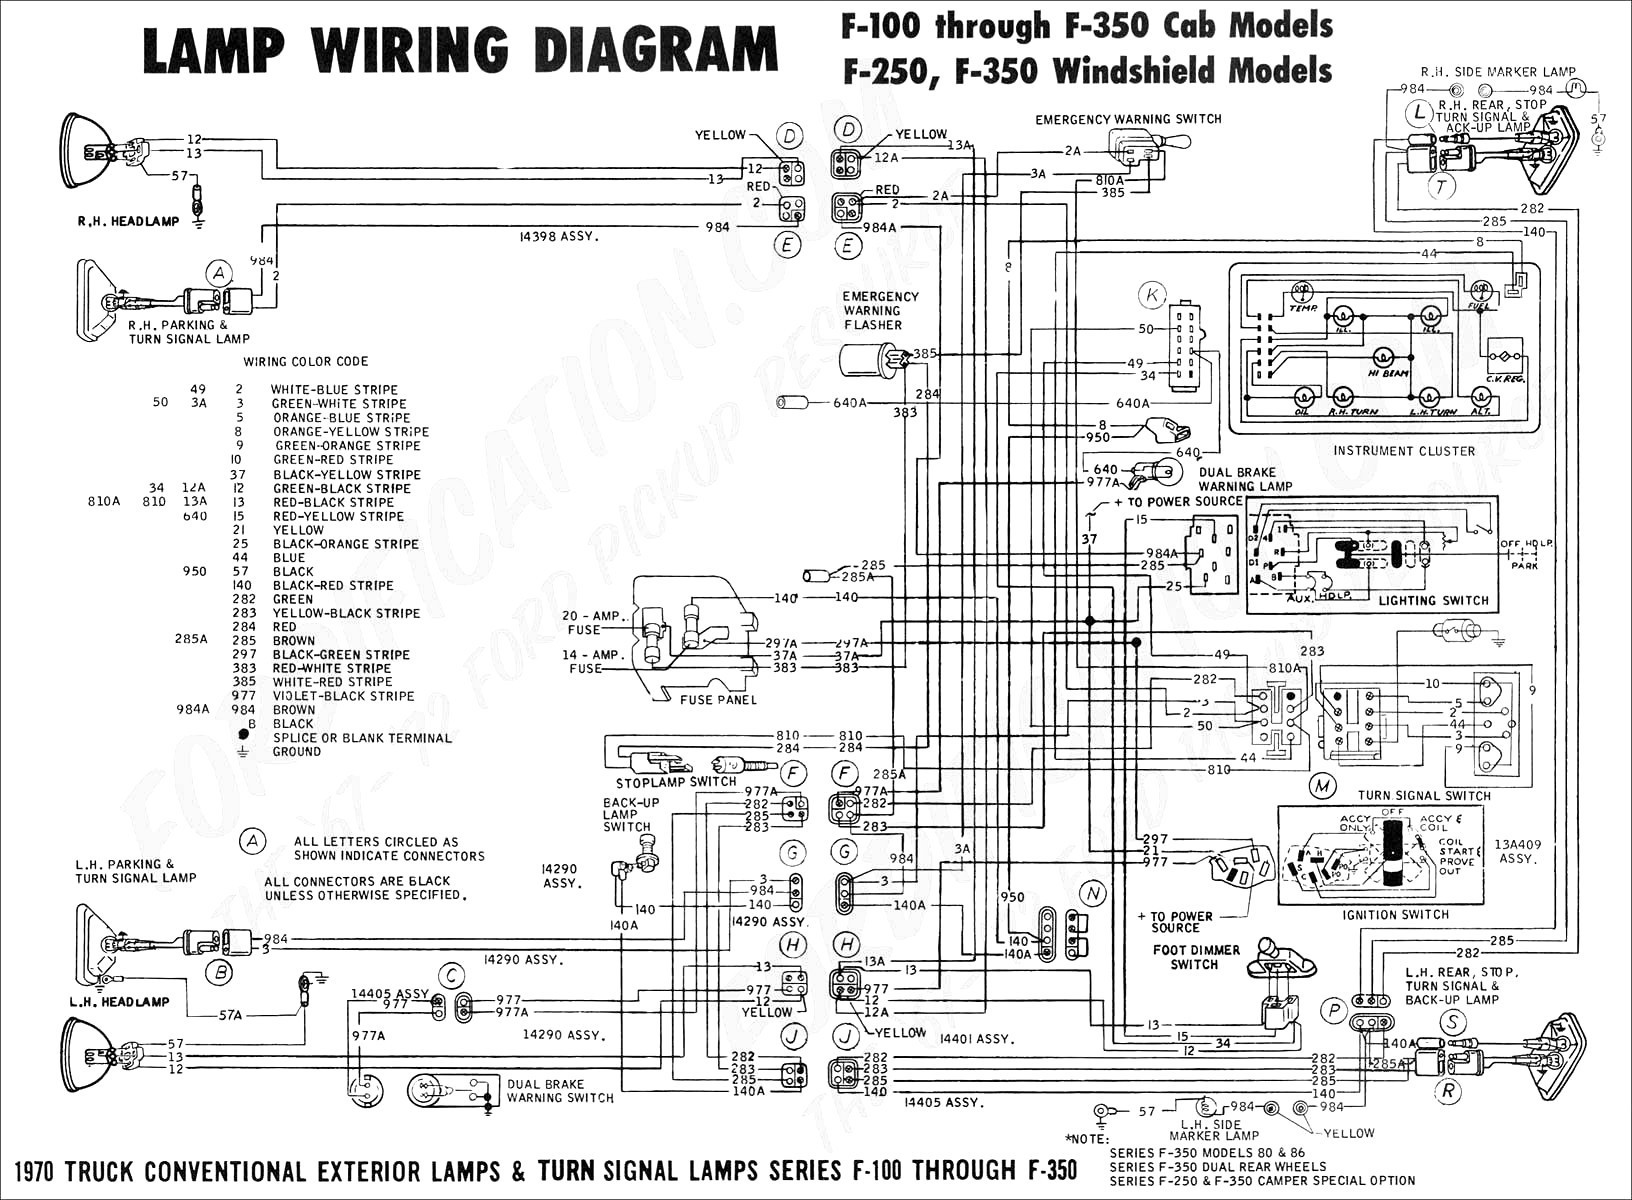 1999 cadillac deville wiring diagram opinions about wiring diagram u2022 rh  hunzadesign co uk 1998 Cadillac DeVille Fuse Diagram 1998 Cadillac DeVille  ...